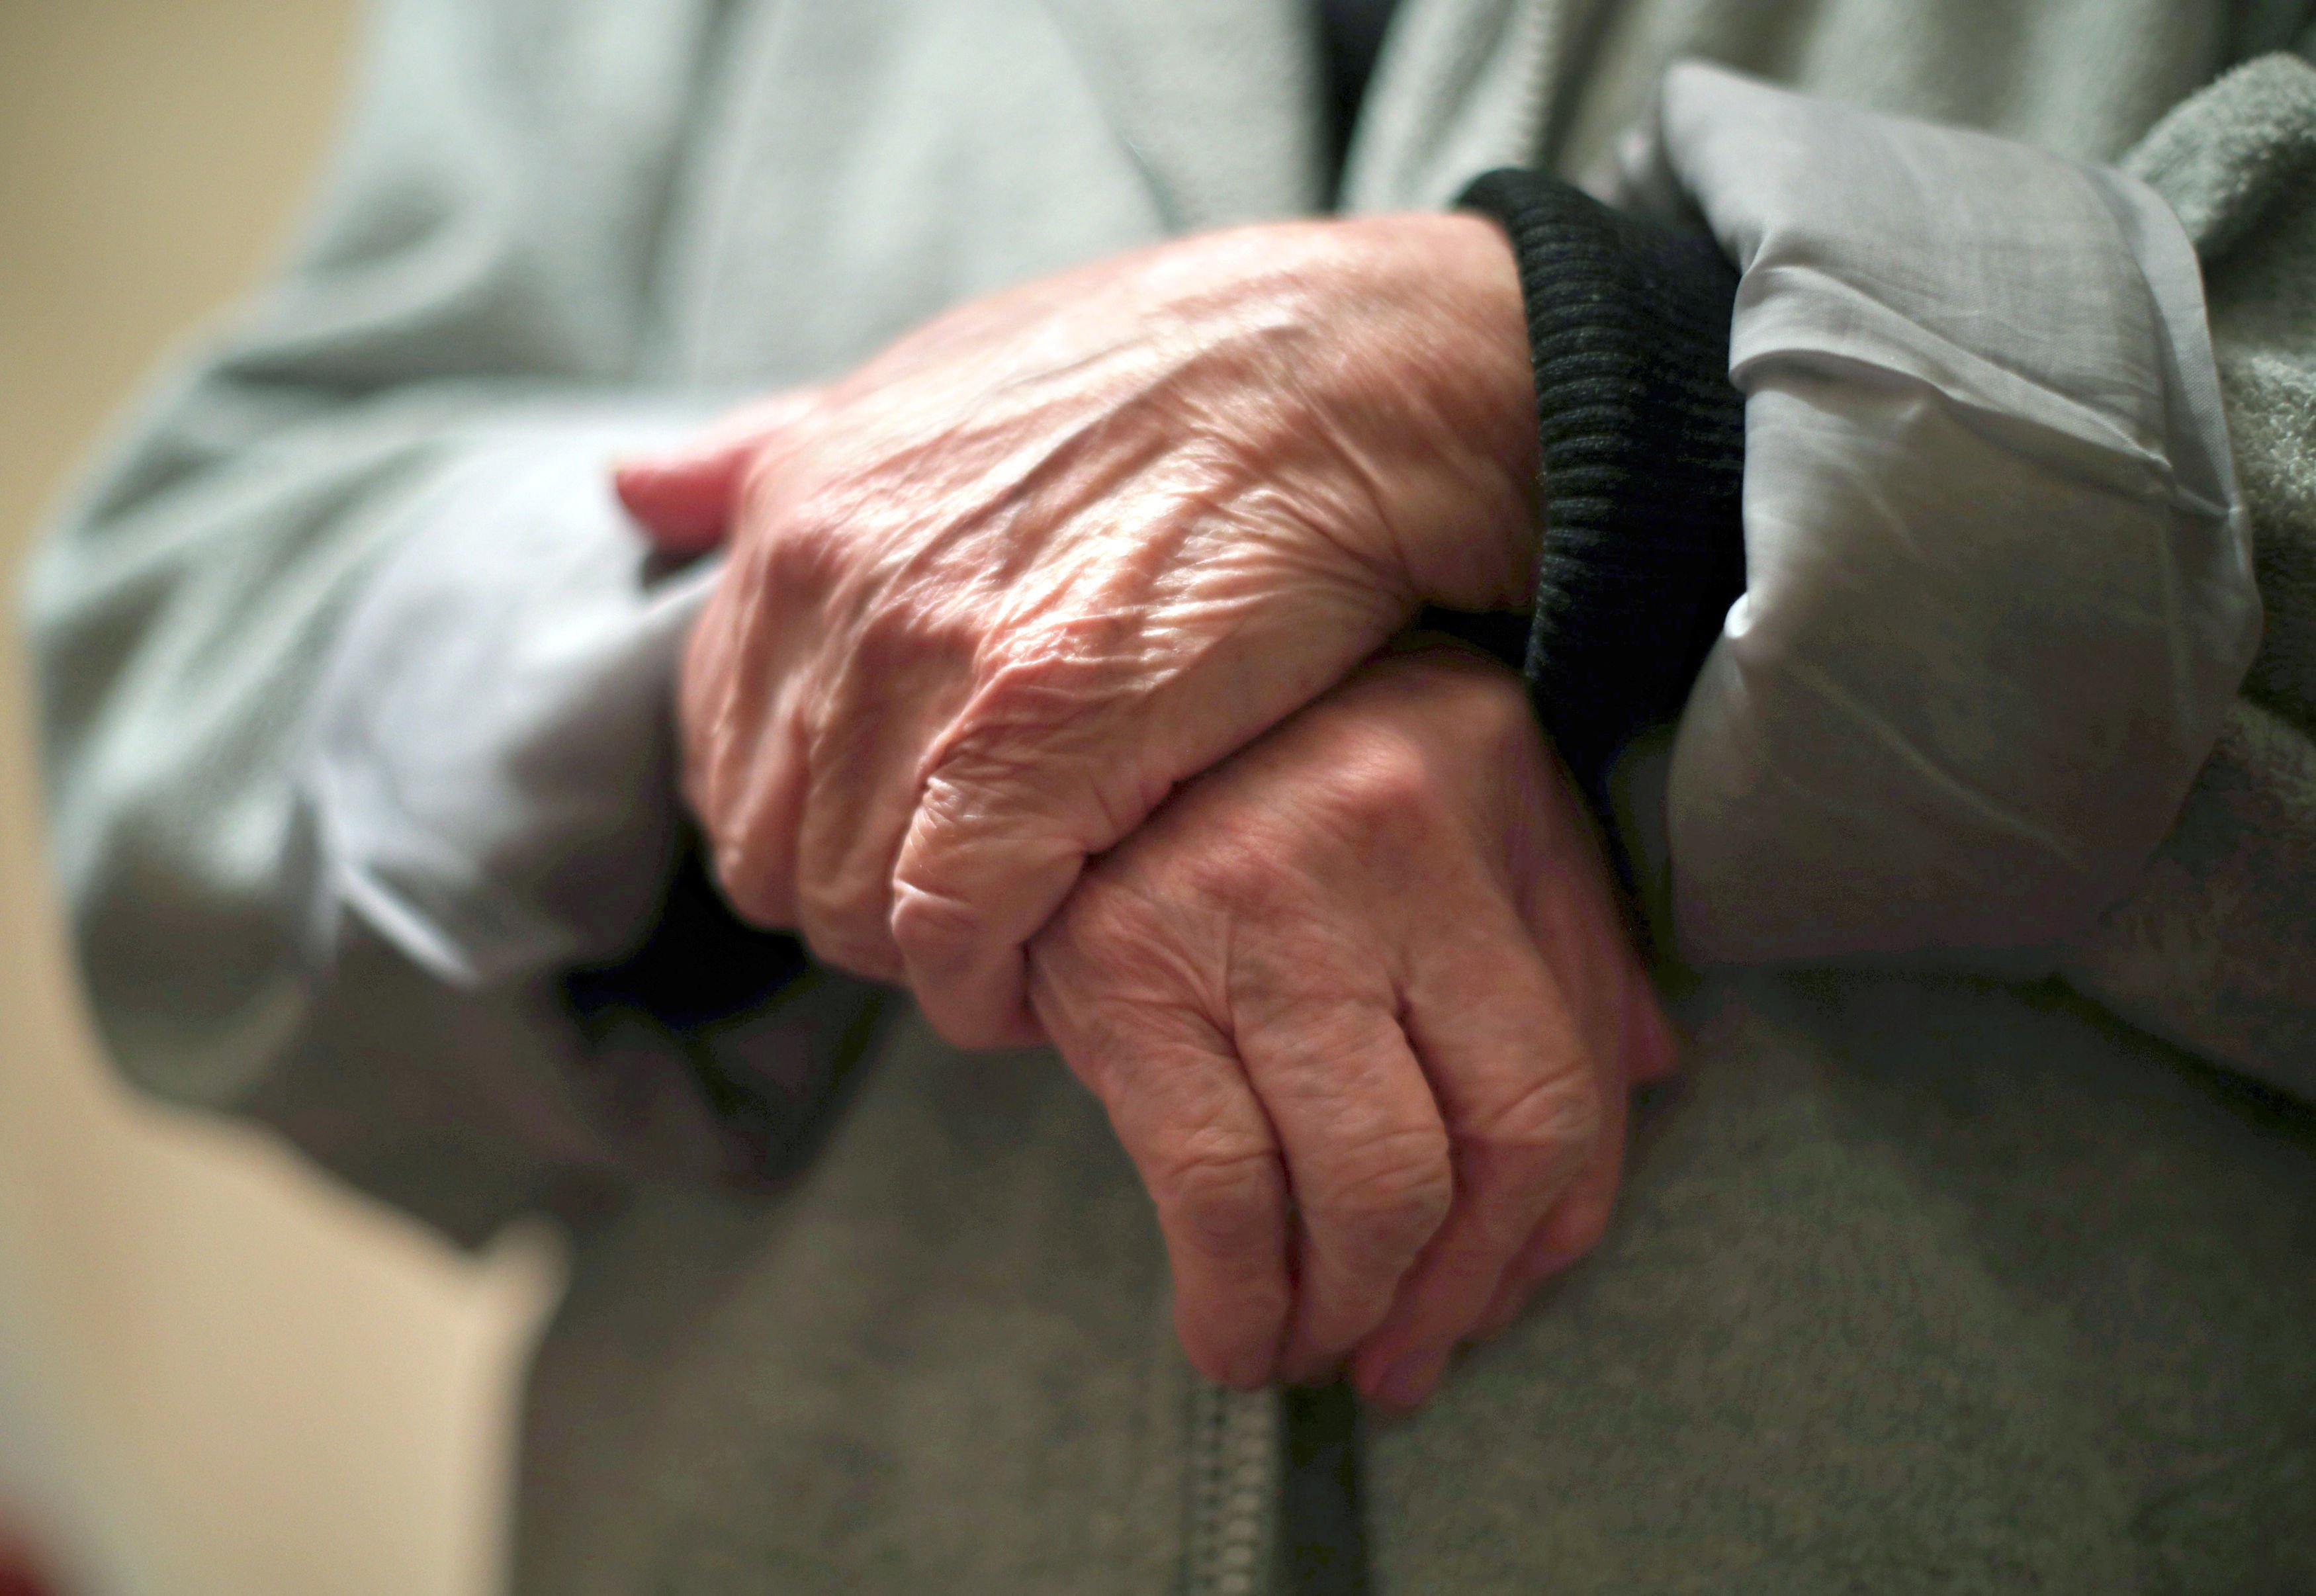 Care home residents' wellbeing suffering 'due to lack of social contact'